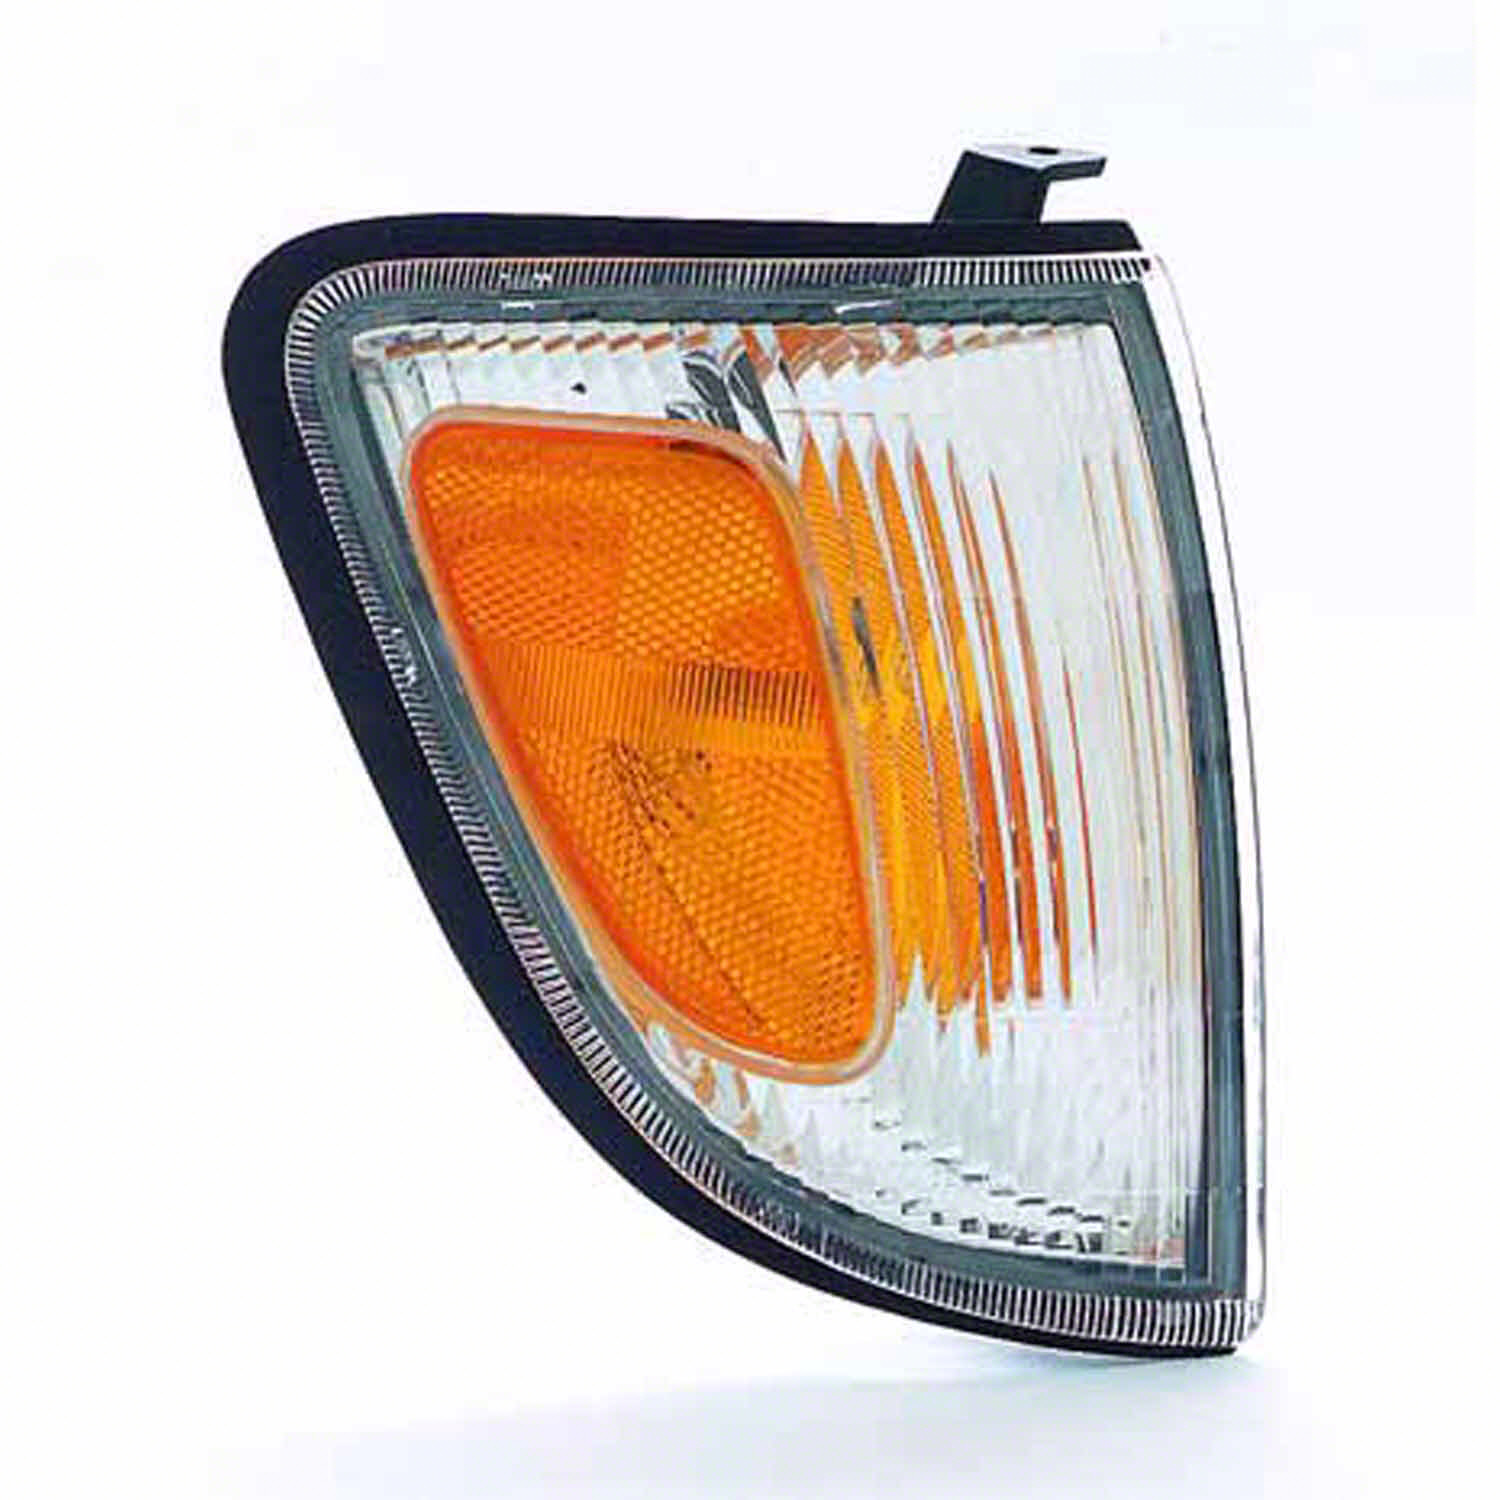 1997-2000 Toyota Tacoma Aftermarket Passenger Side Parking and Side Marker Lamp Assembly 8161004050 NSF